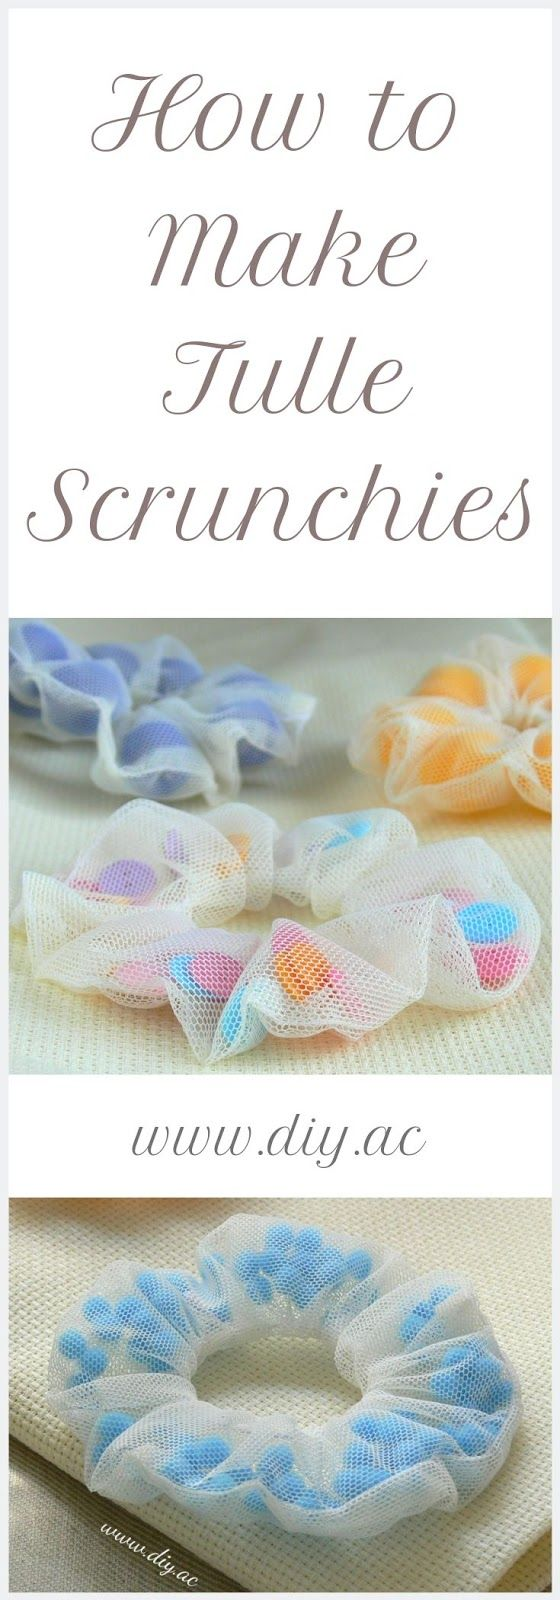 HOW TO SEW TULLE SCRUNCHIES STEP BY STEP - DIY by Anna Craft #scrunchiesdiy